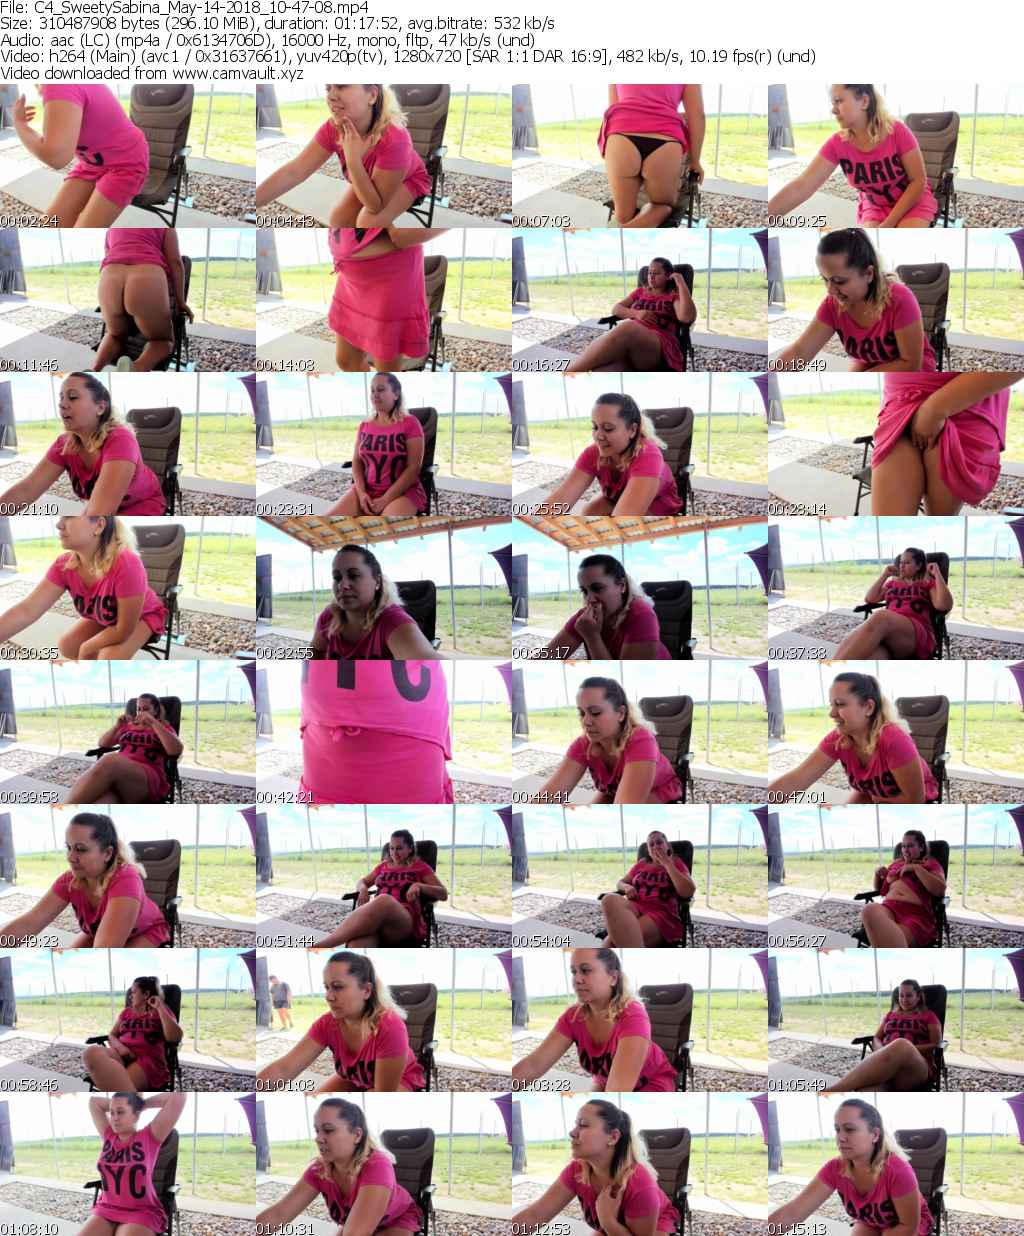 Video preview for model SweetySabina